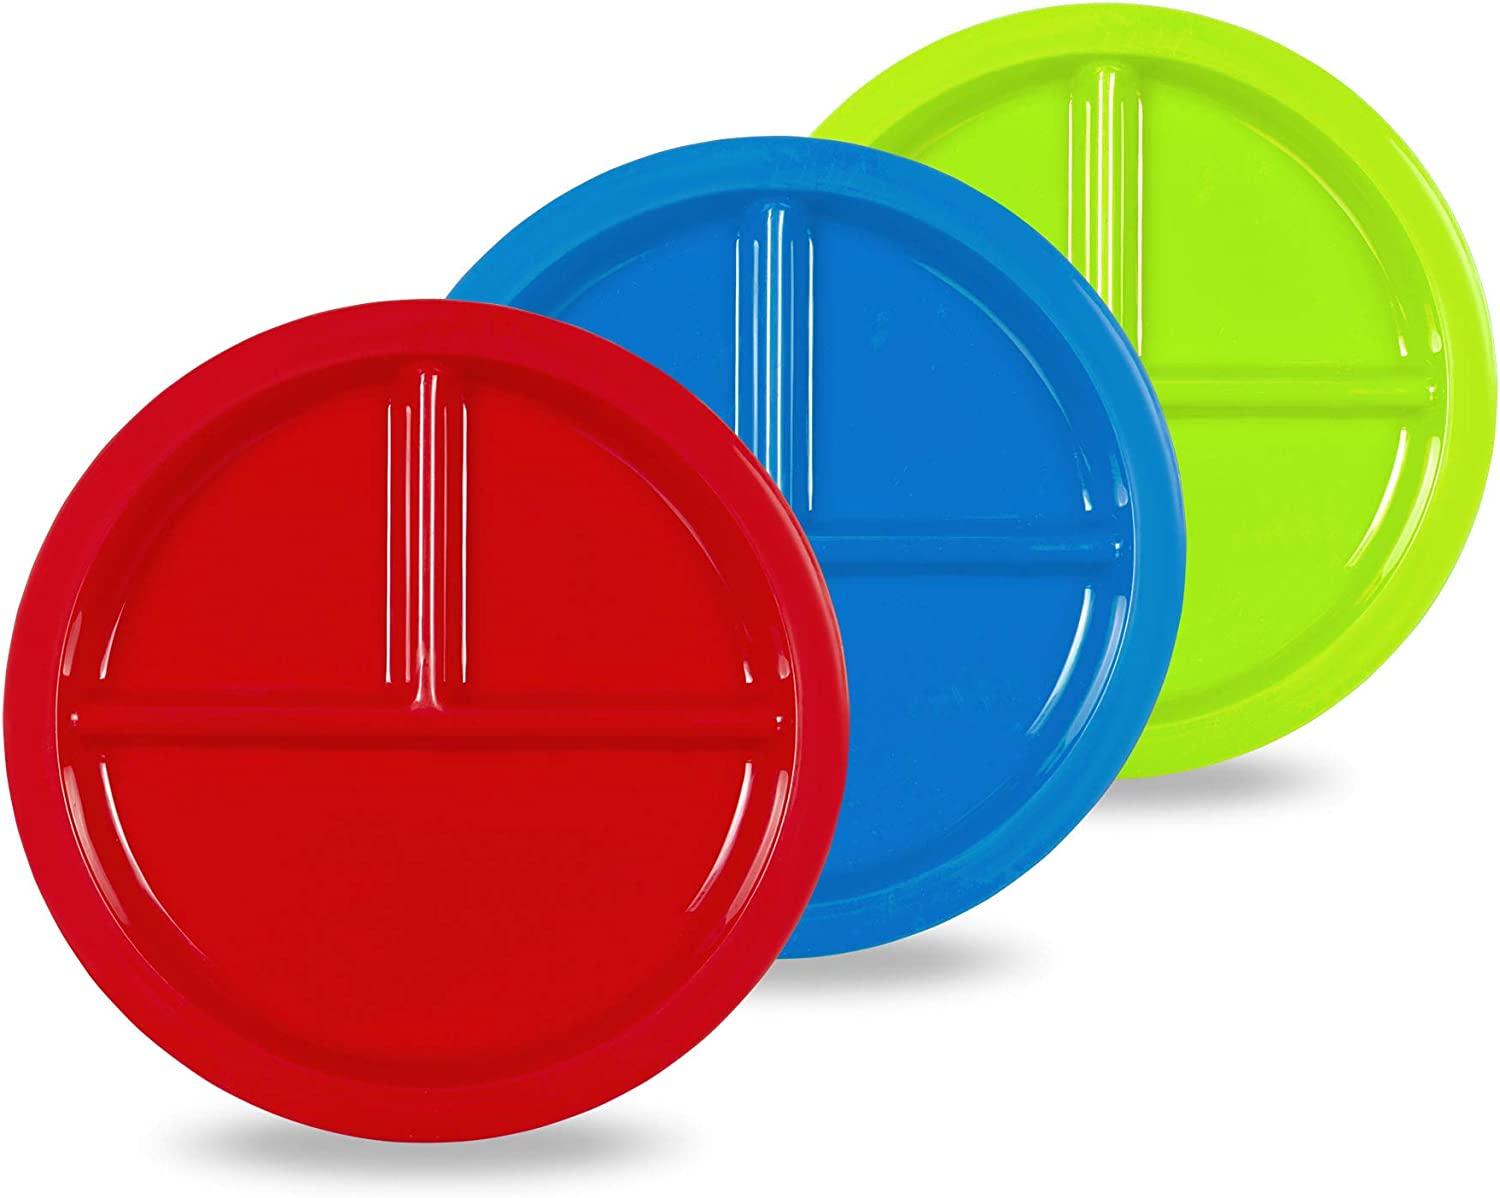 Plaskidy Plastic Divided Plates for Kids - Set of 3 Kids Plates with Dividers in Fun Bright Colors - Toddler Compartment Plates Reusable Dishwasher/Microwave Safe BPA Free for Kids & Toddlers